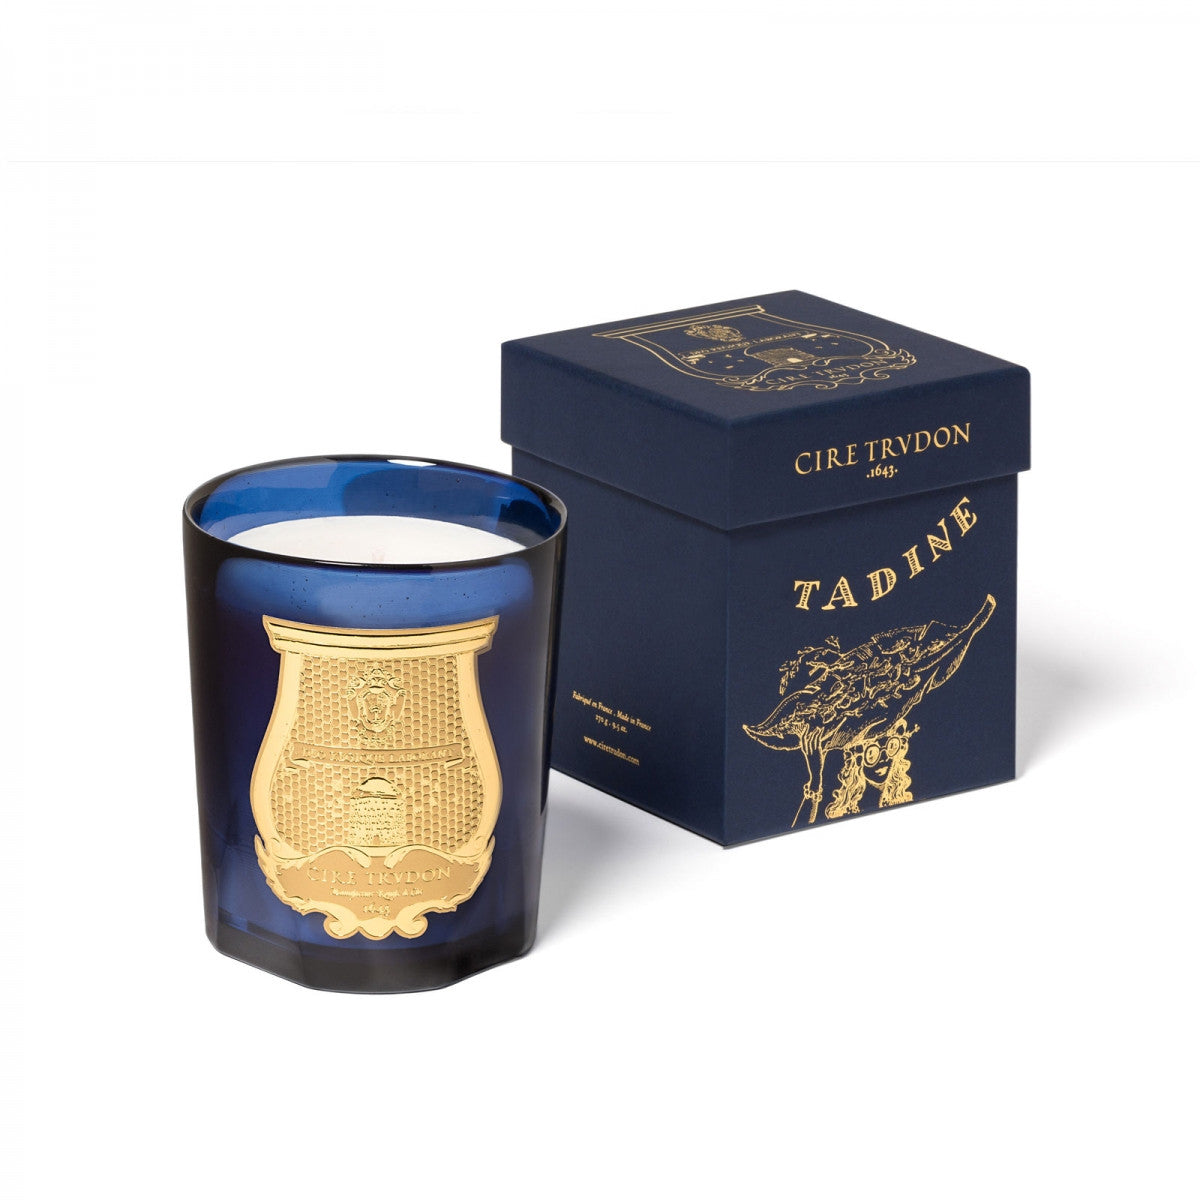 Cire Trudon - TADINE- LIMITED EDITION NEW FRAGRANCE